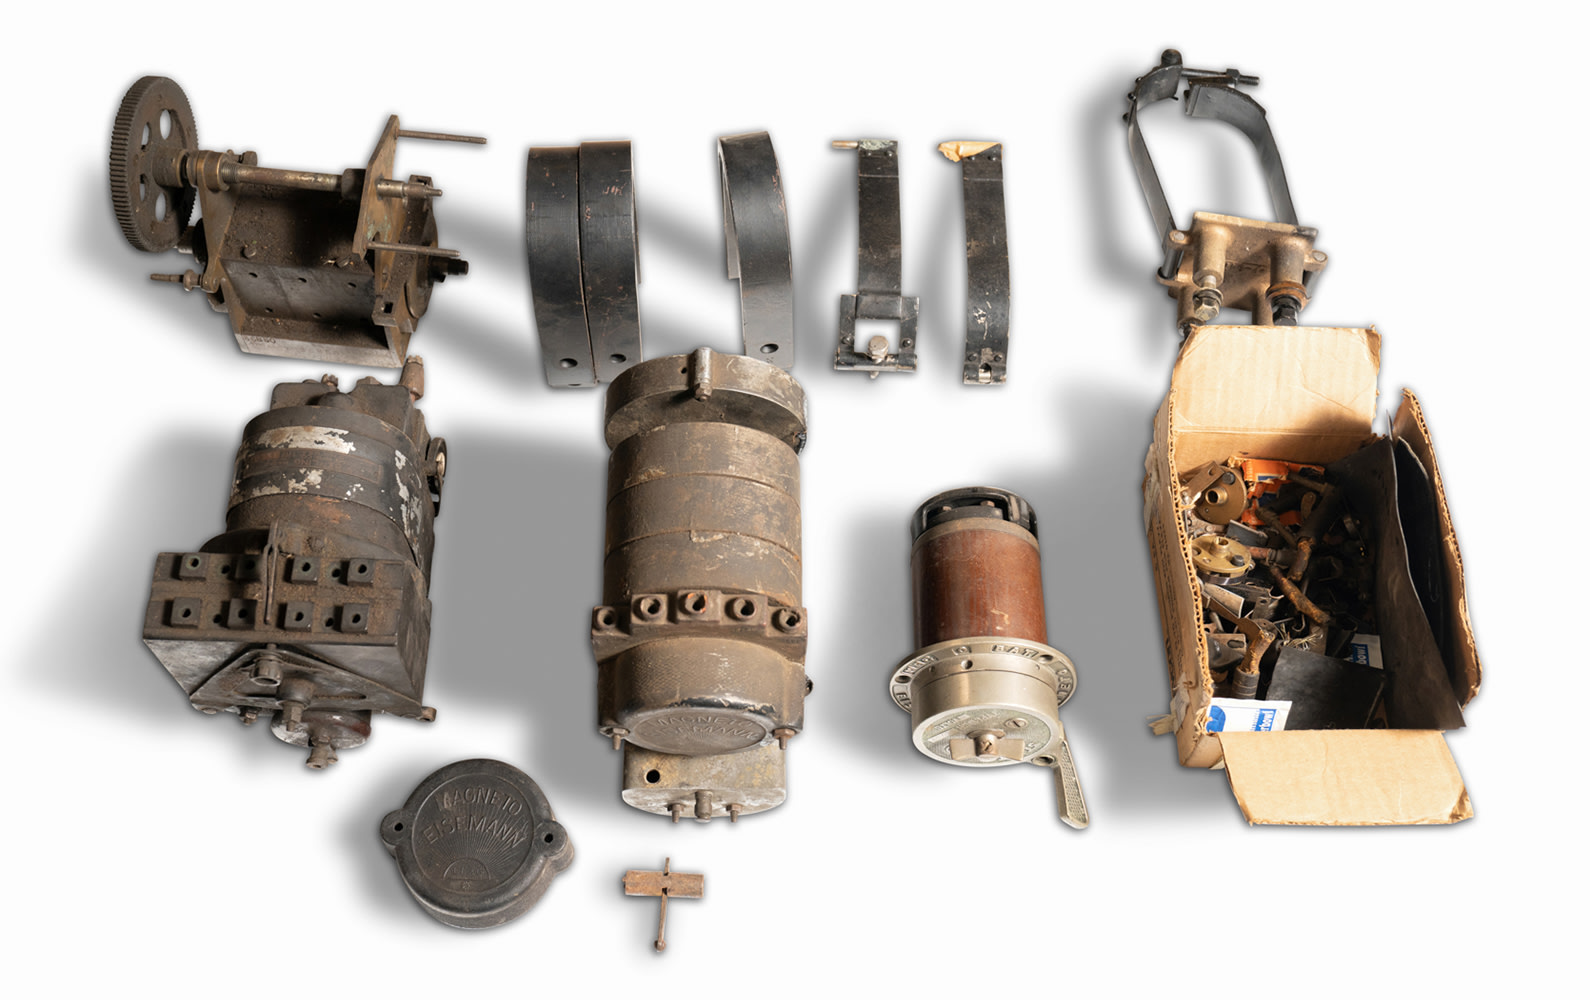 Assorted Eisemann Magnetos and Ignition Parts